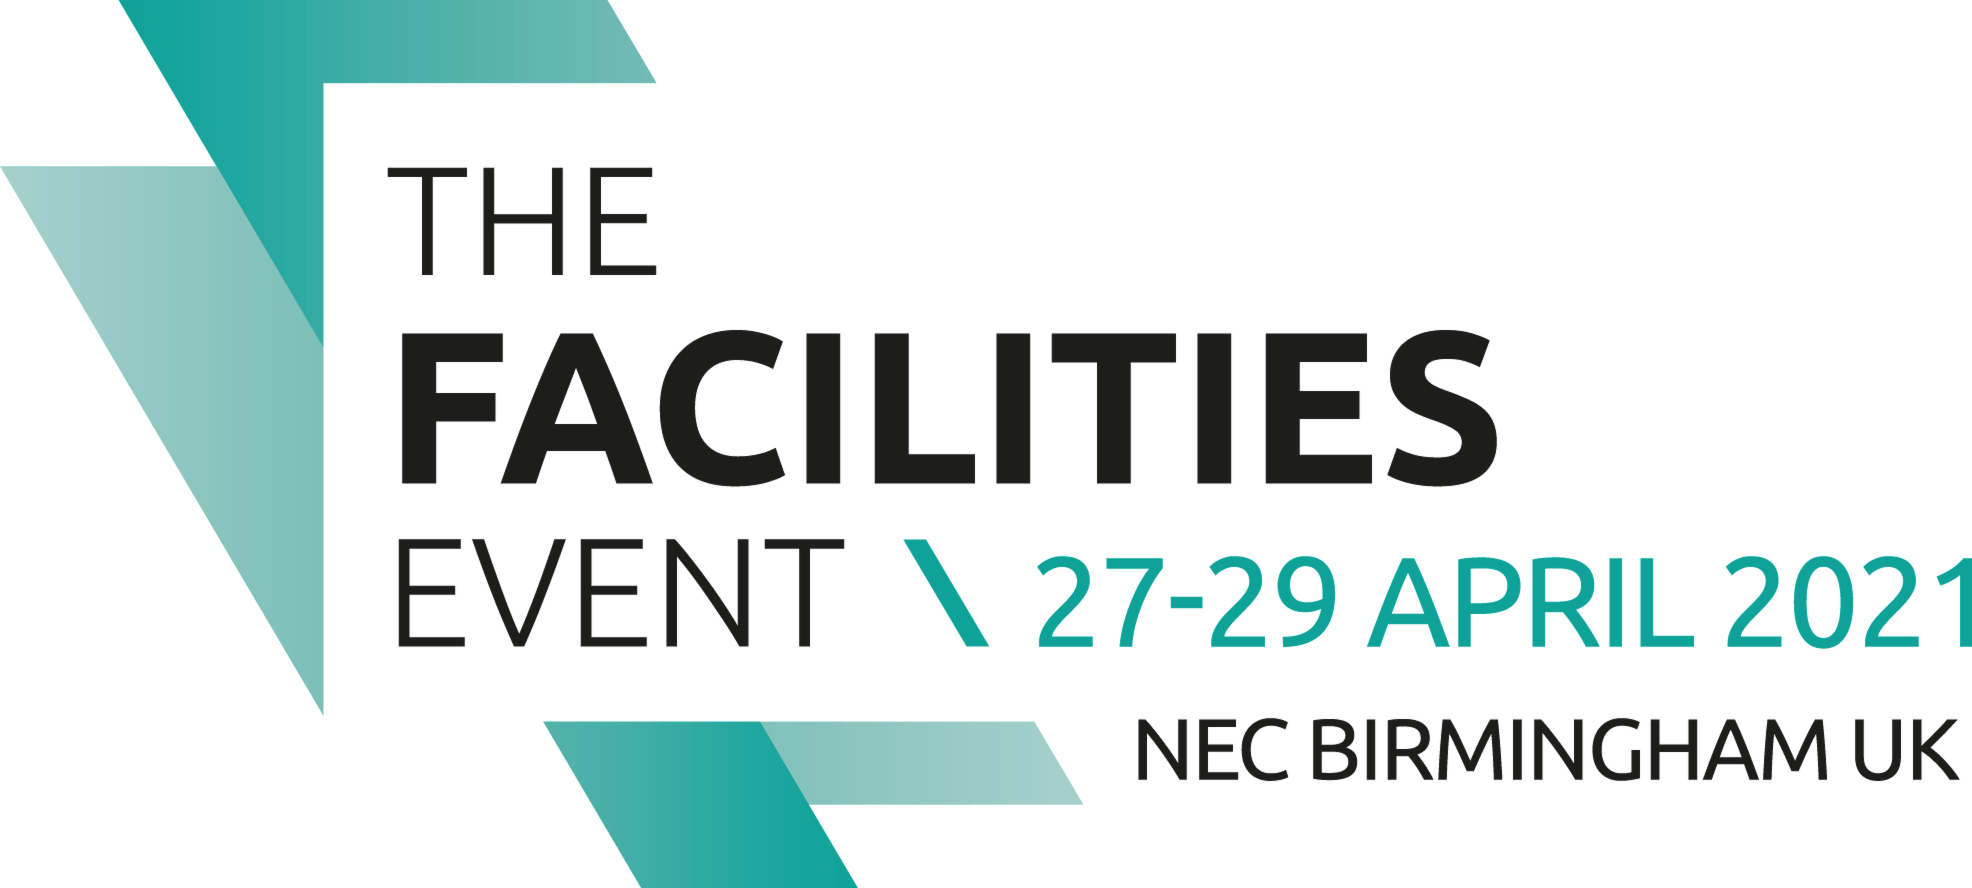 The Facilities Event